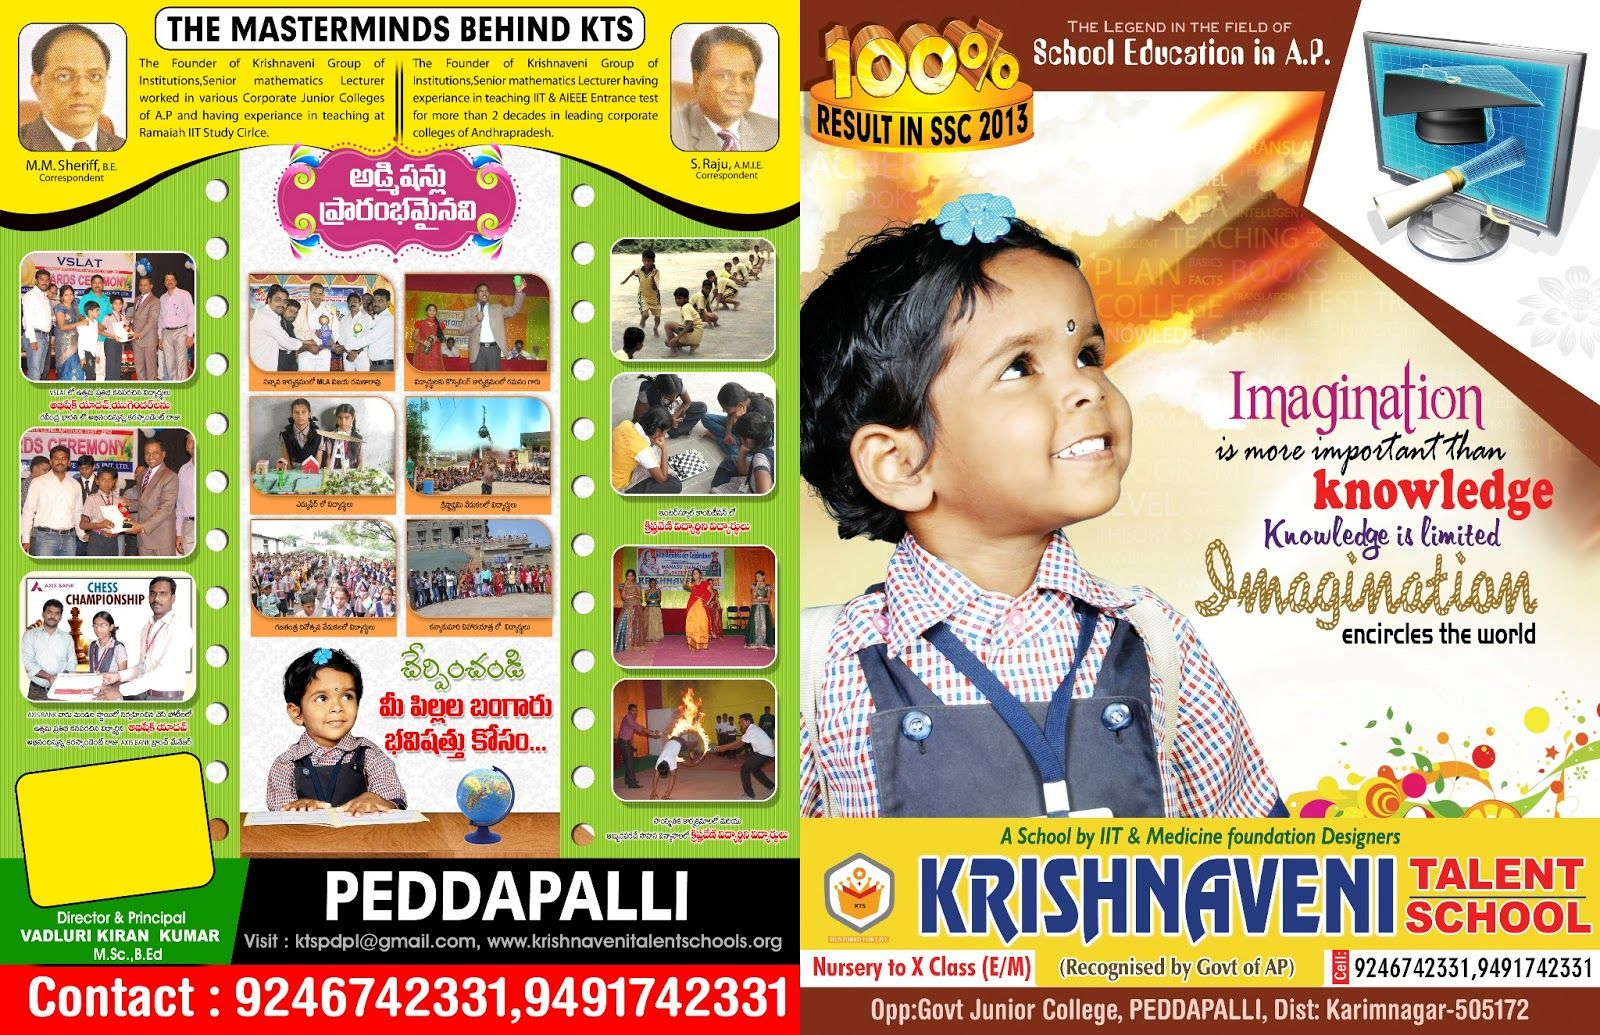 krishnaveni telent school brochure design template ...